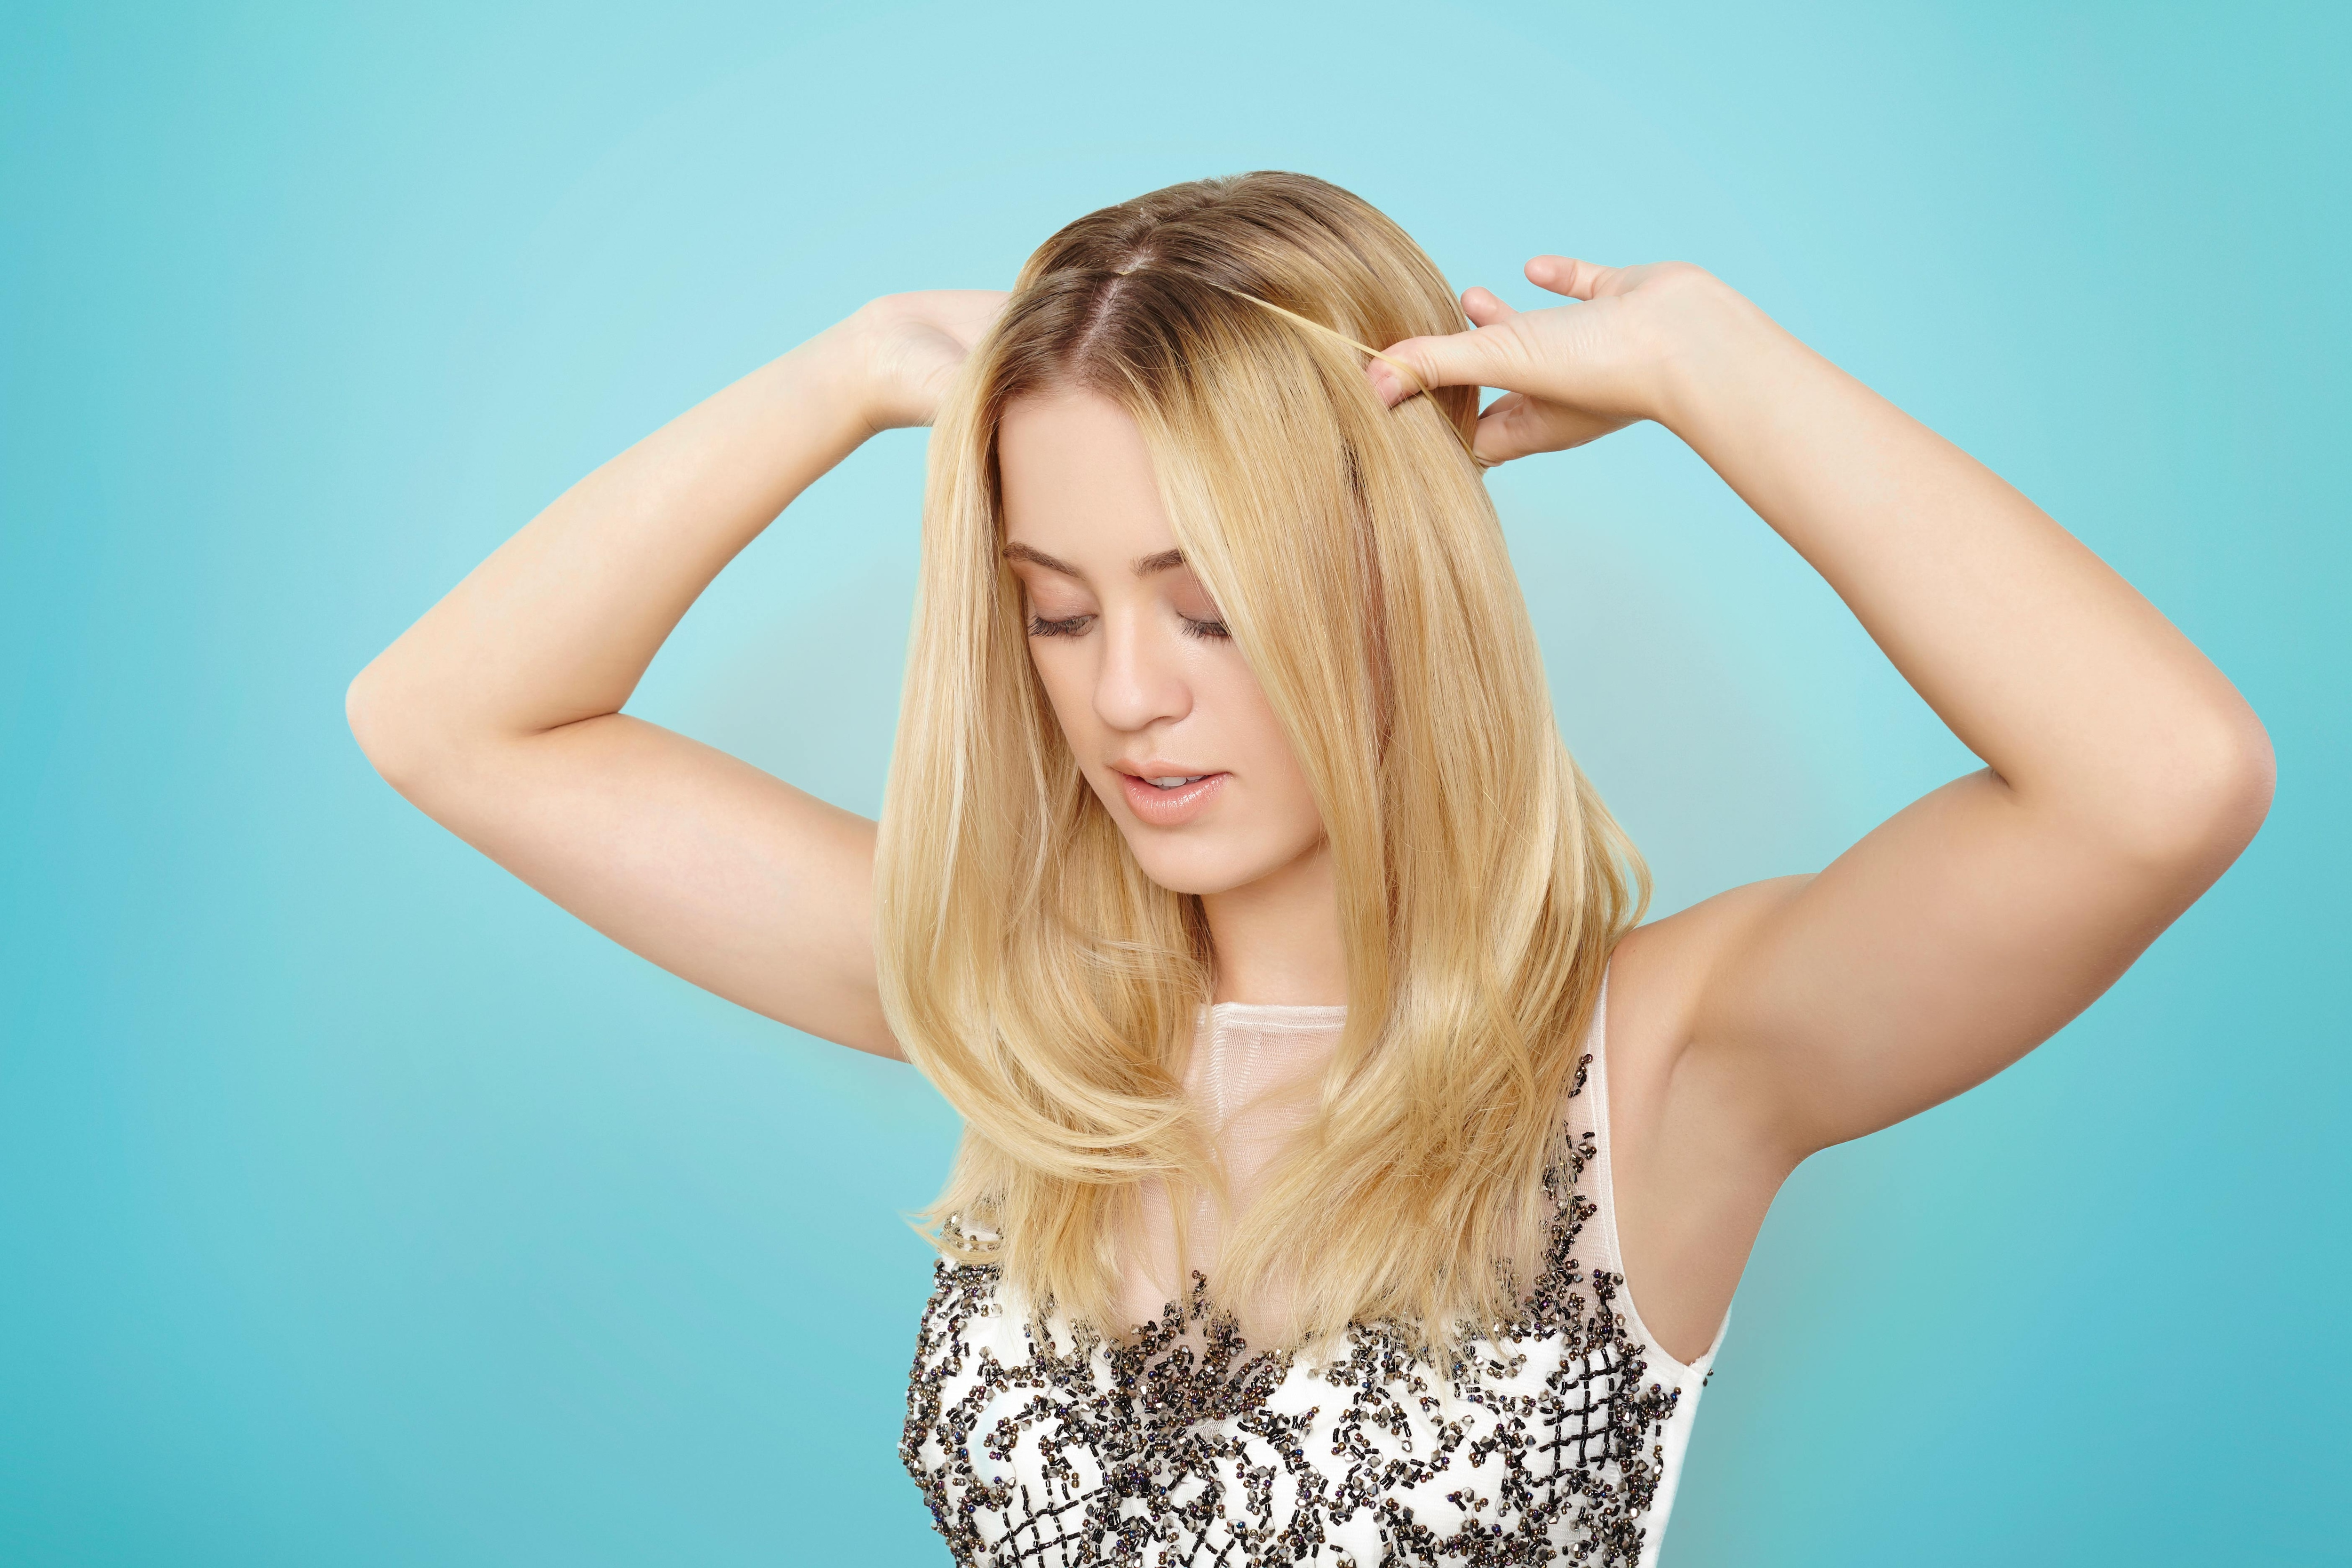 blonde model with shoulder length straight hair putting an elastic hairband around her hair